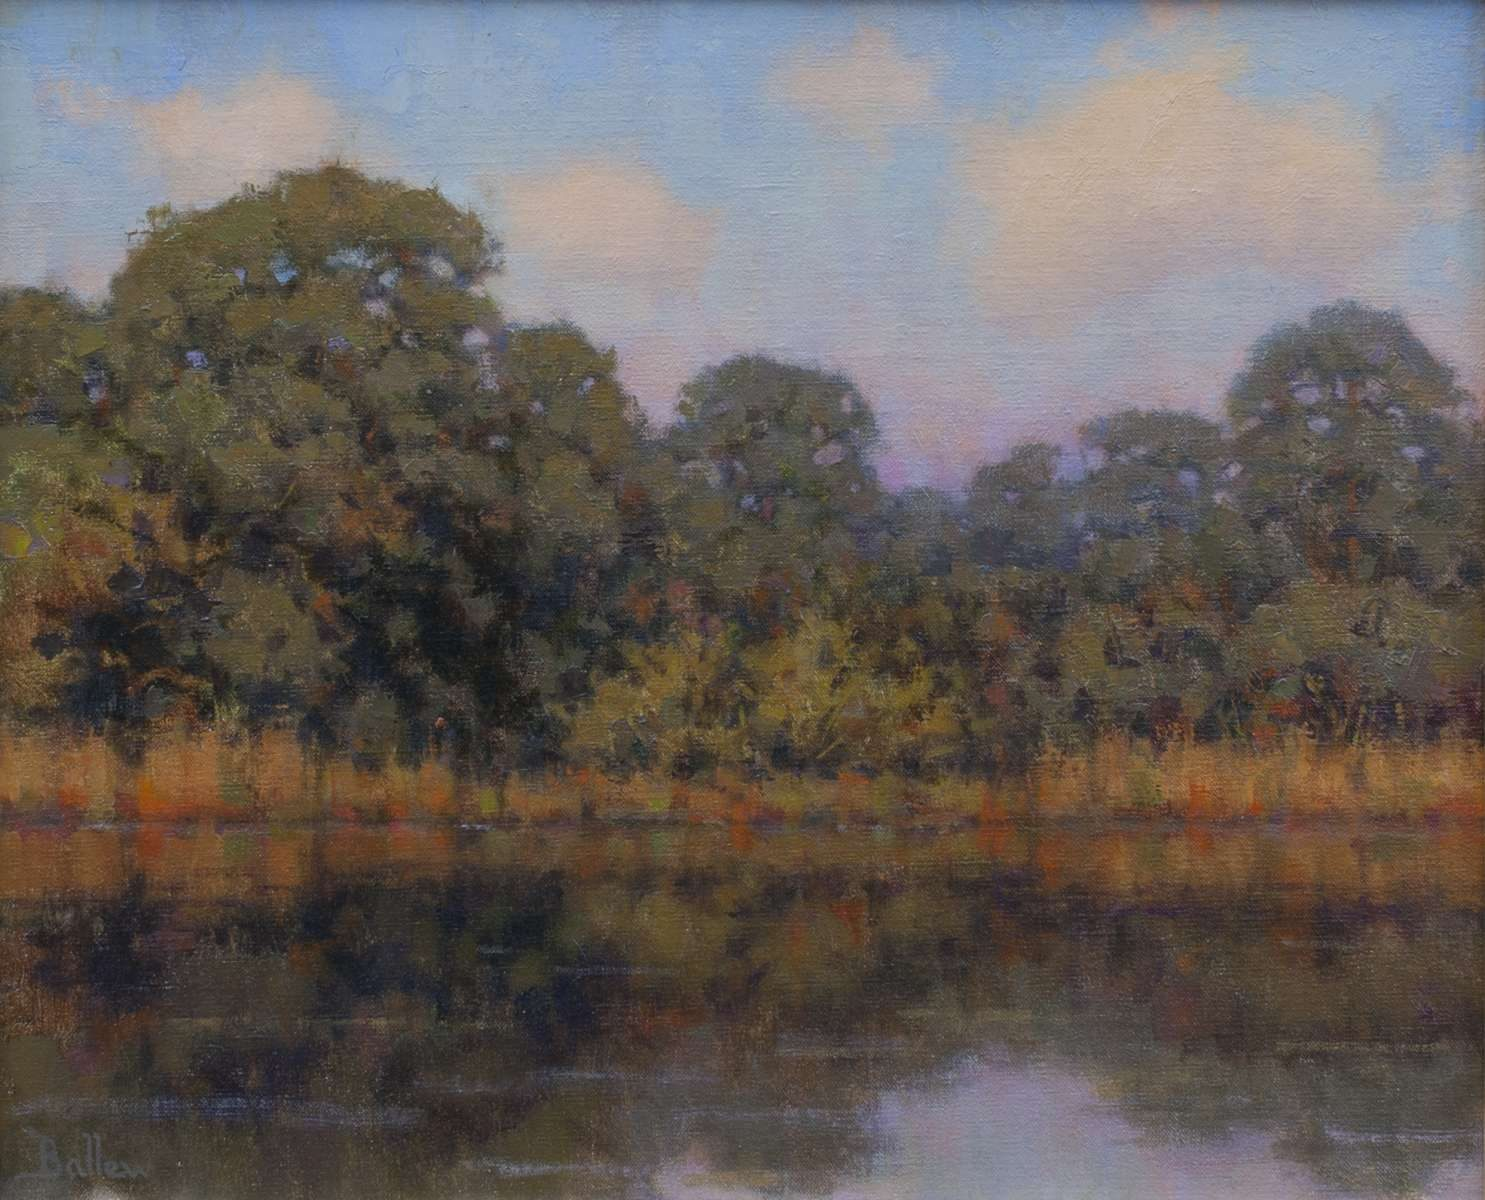 Autumn Reflections by David Ballew